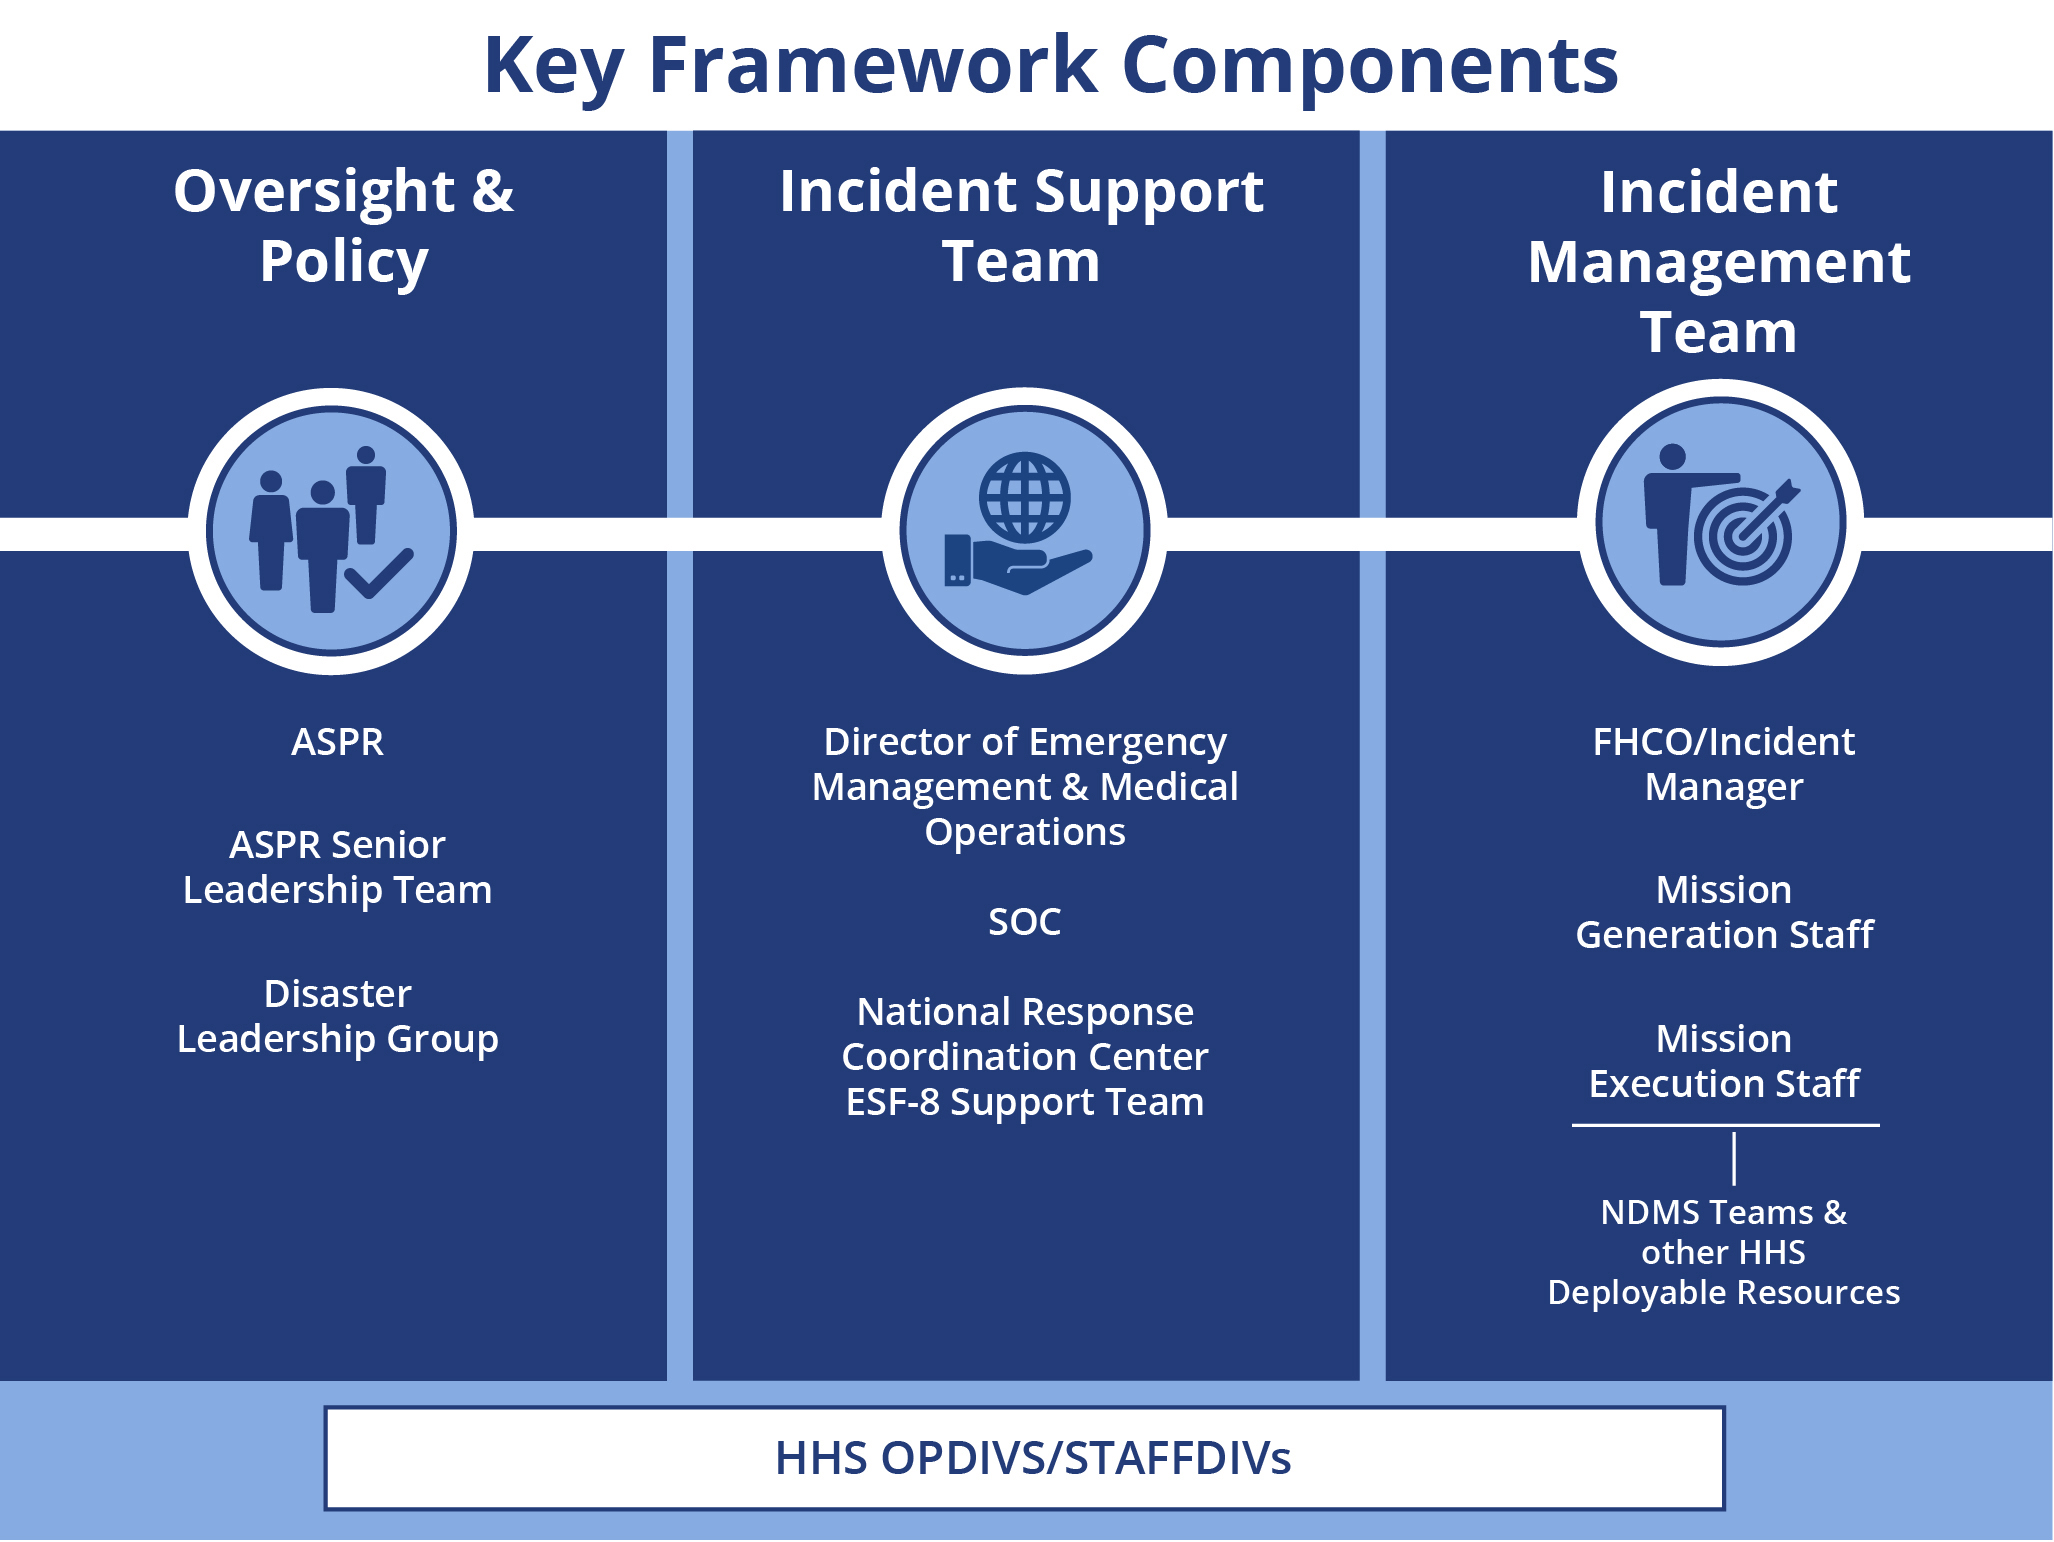 Key Framework Components